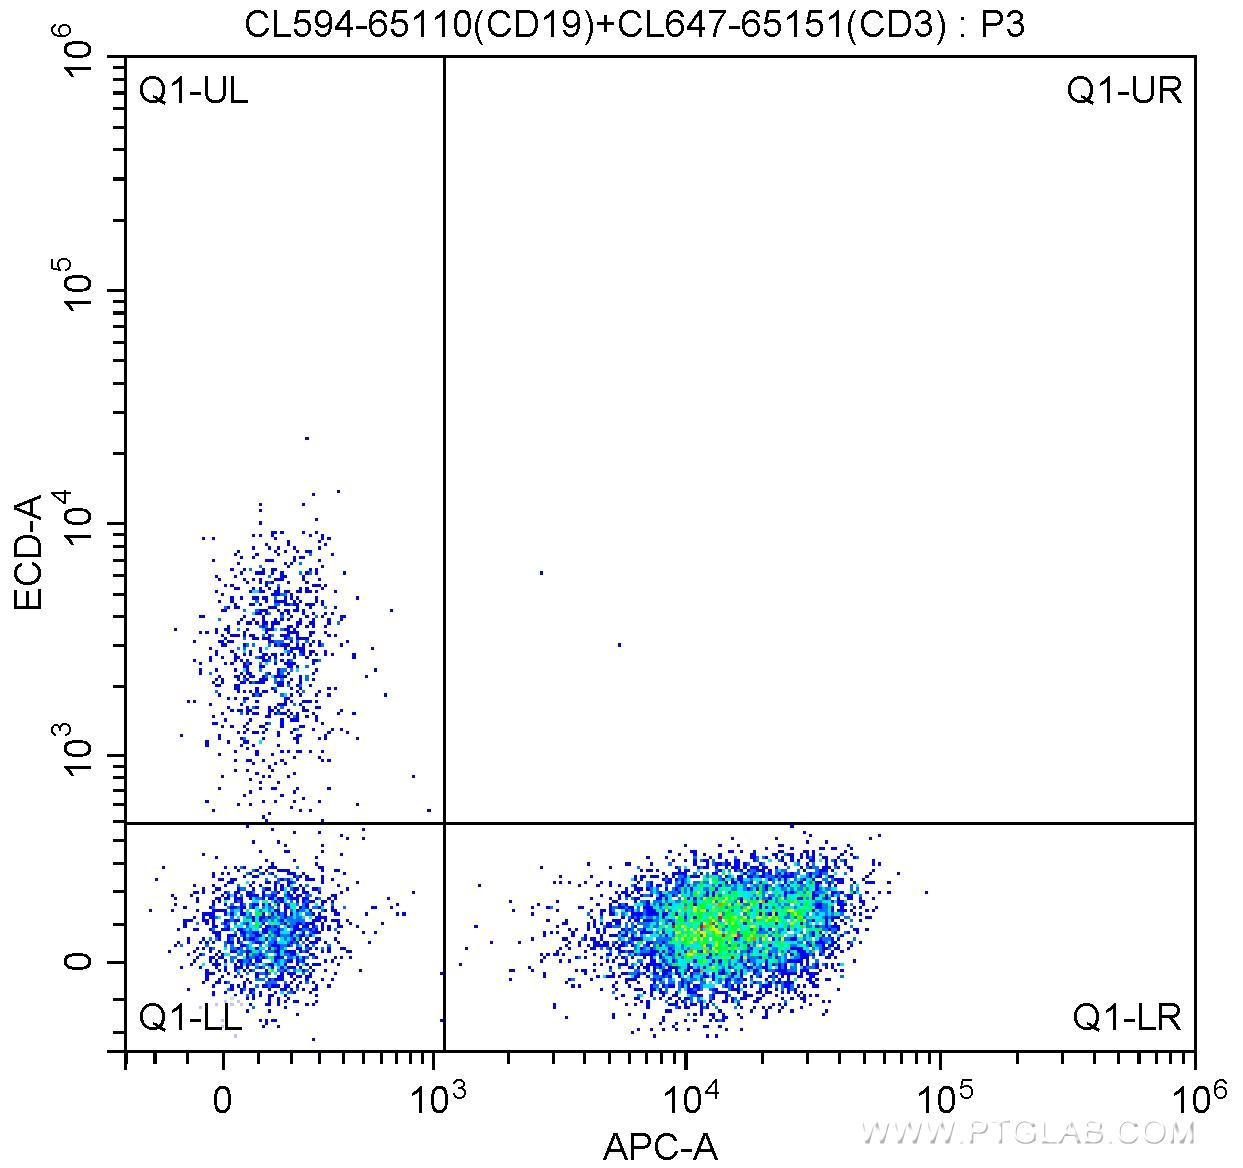 1X10^6 human peripheral blood lymphocytes were surface stained with 5 ul CoraLite®647-conjugated Anti-Human CD3 (CL647-65151, Clone: UCHT1) and 5 ul CoraLite®594 Anti-Human CD19 (CL594-65110, Clone:HIB19). Cells were not fixed.